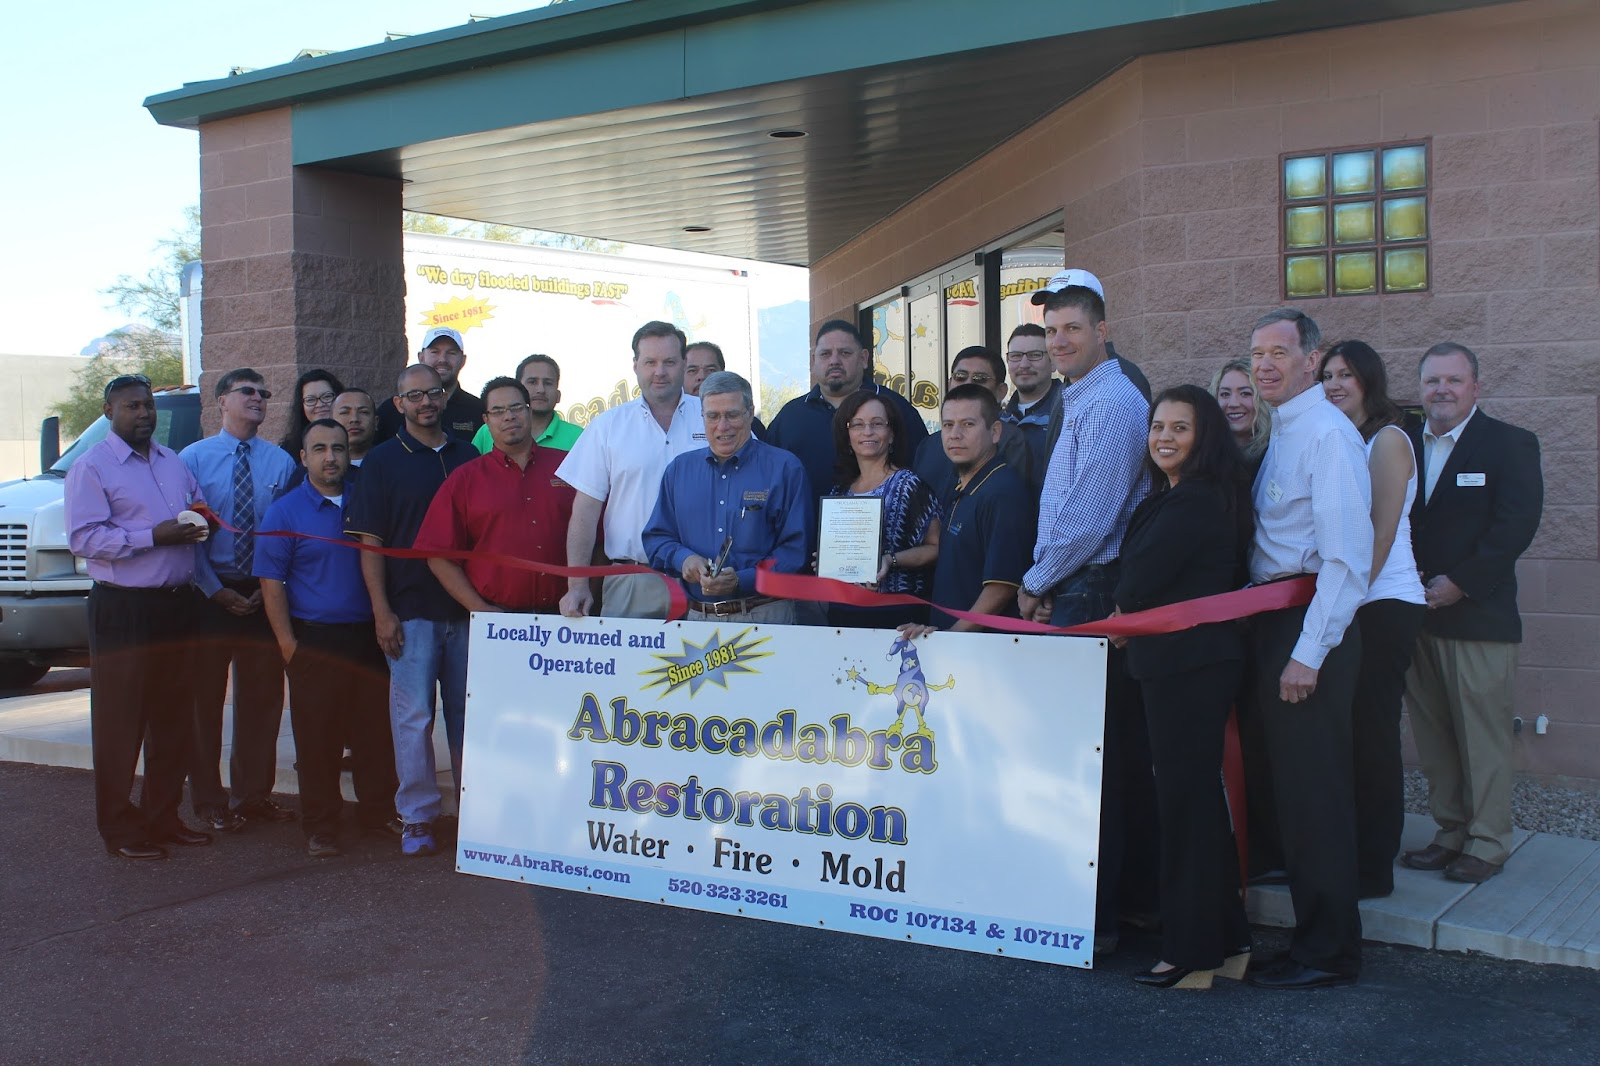 Congratulations to Abracadabra Restoration, located at 4814 N. Shamrock Place, on their 35th anniversary!